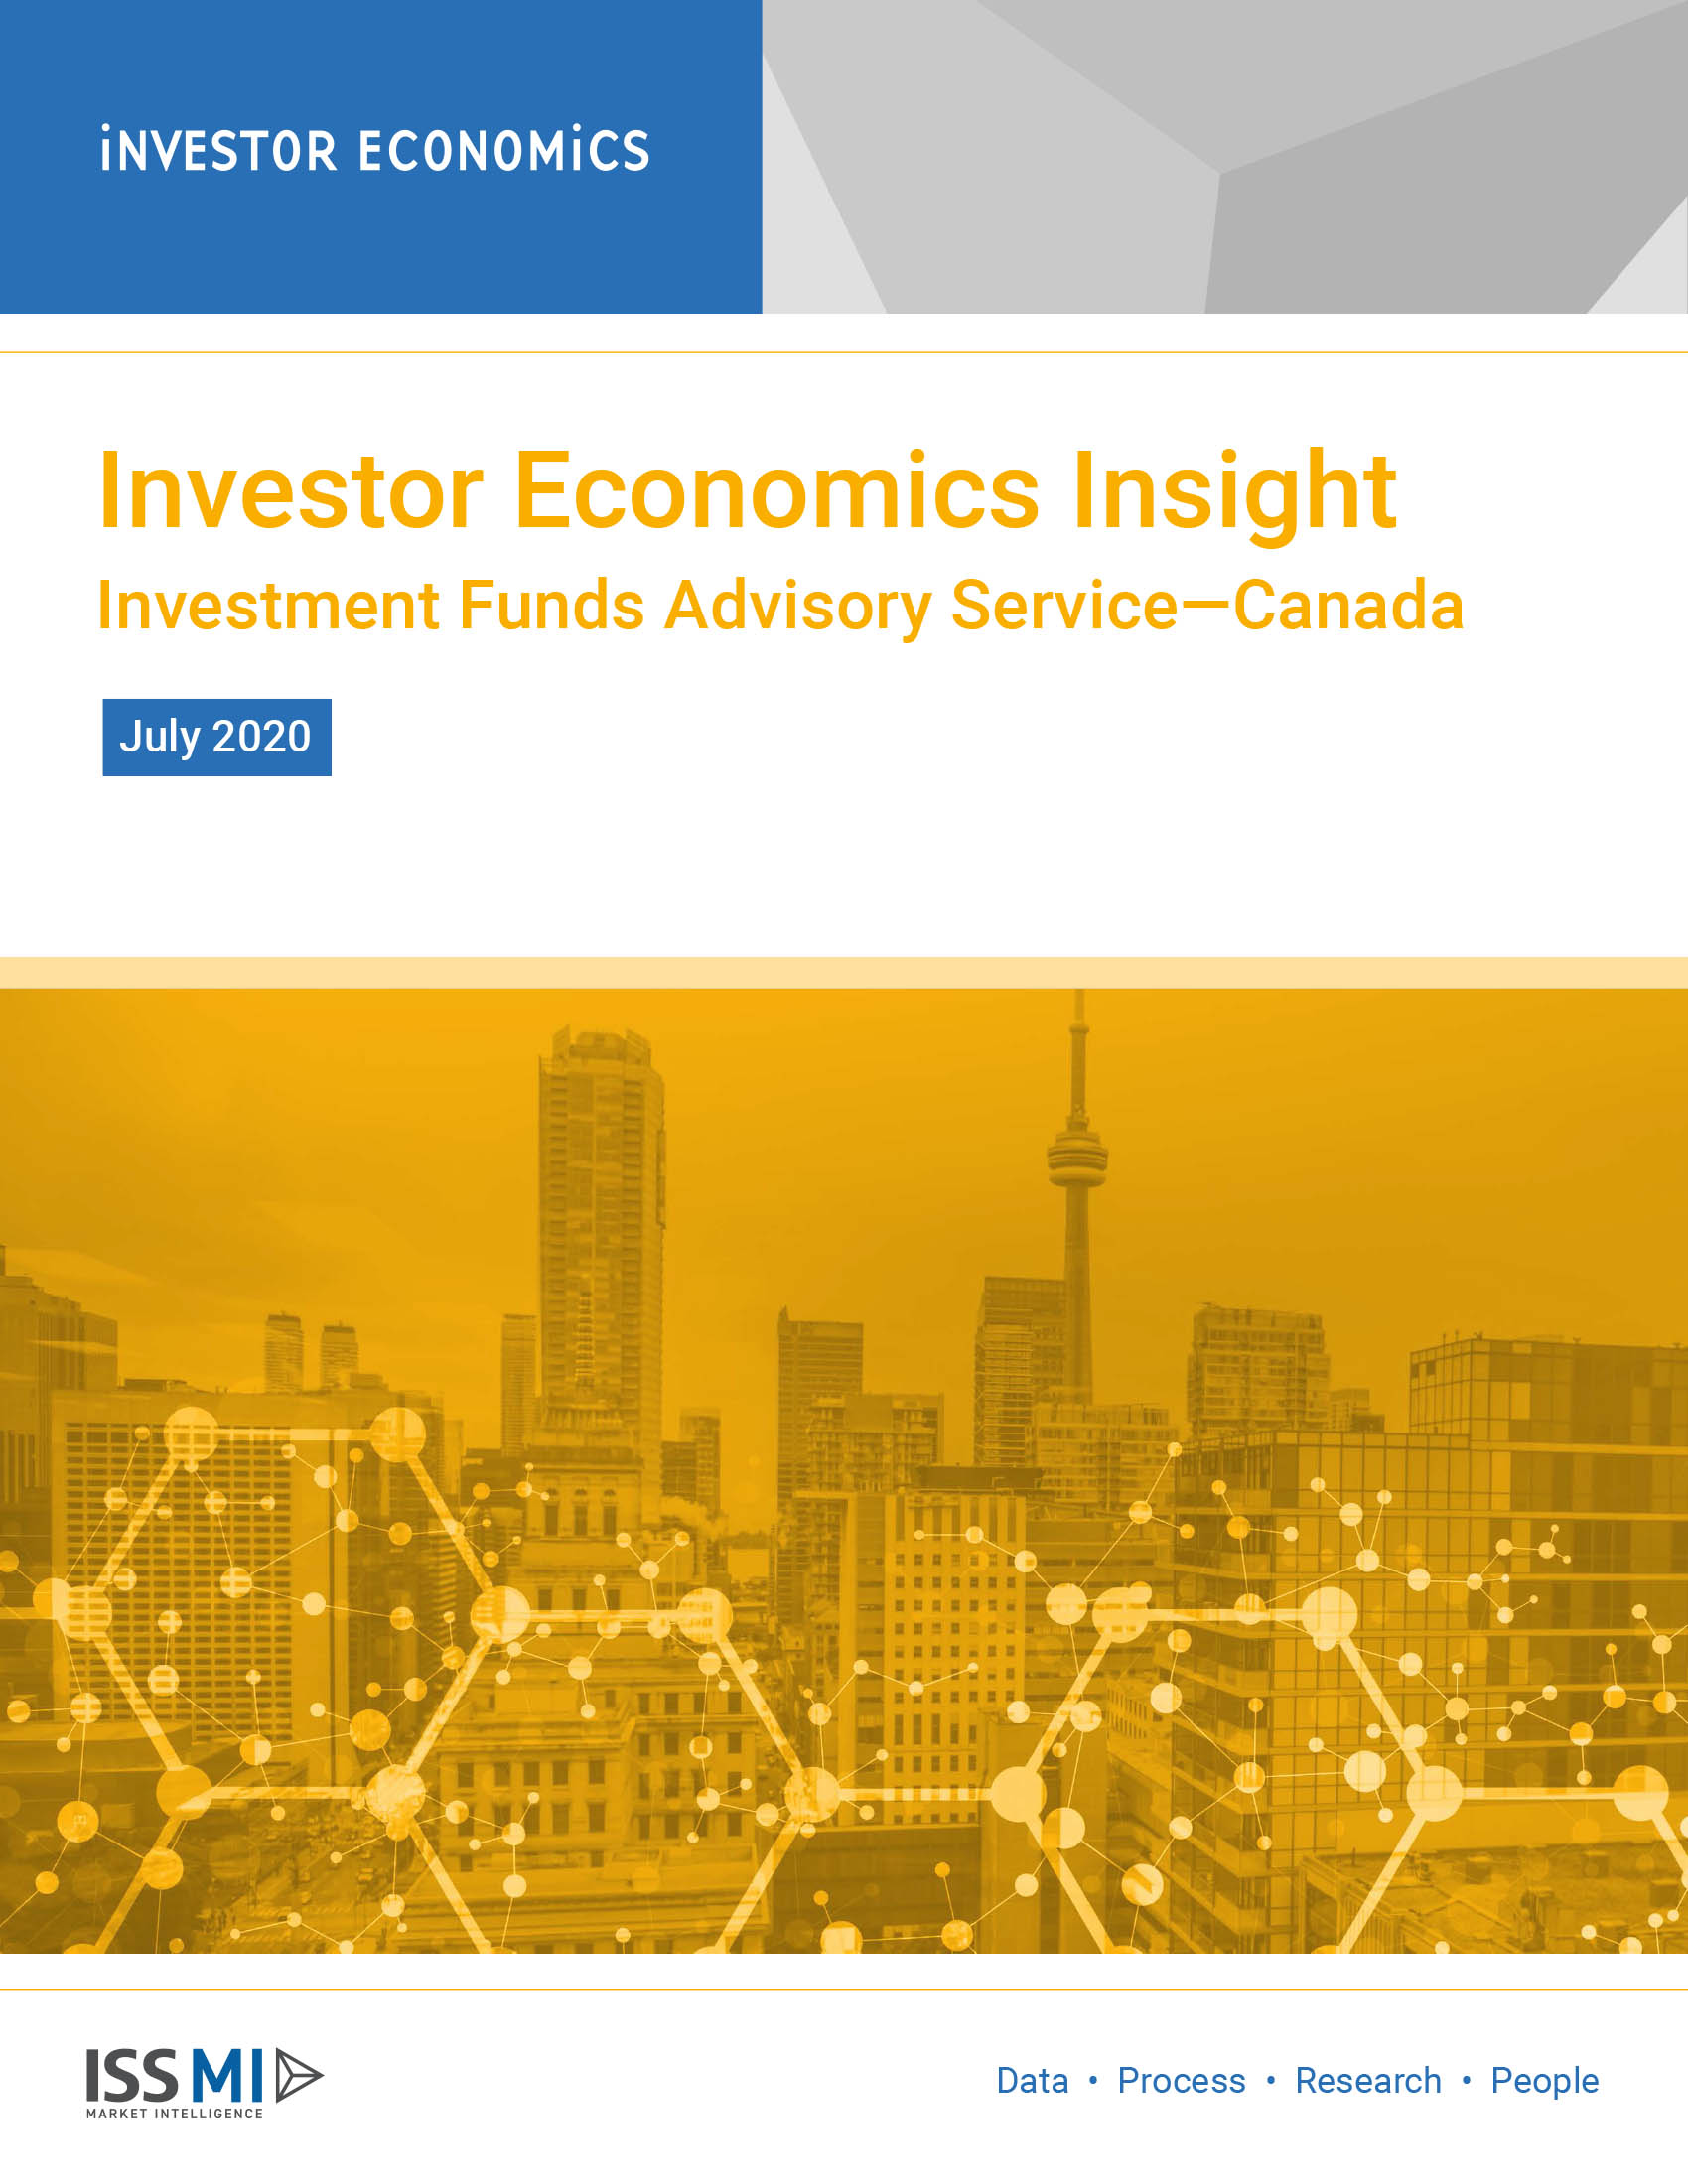 Investor Economics Insight July 2020